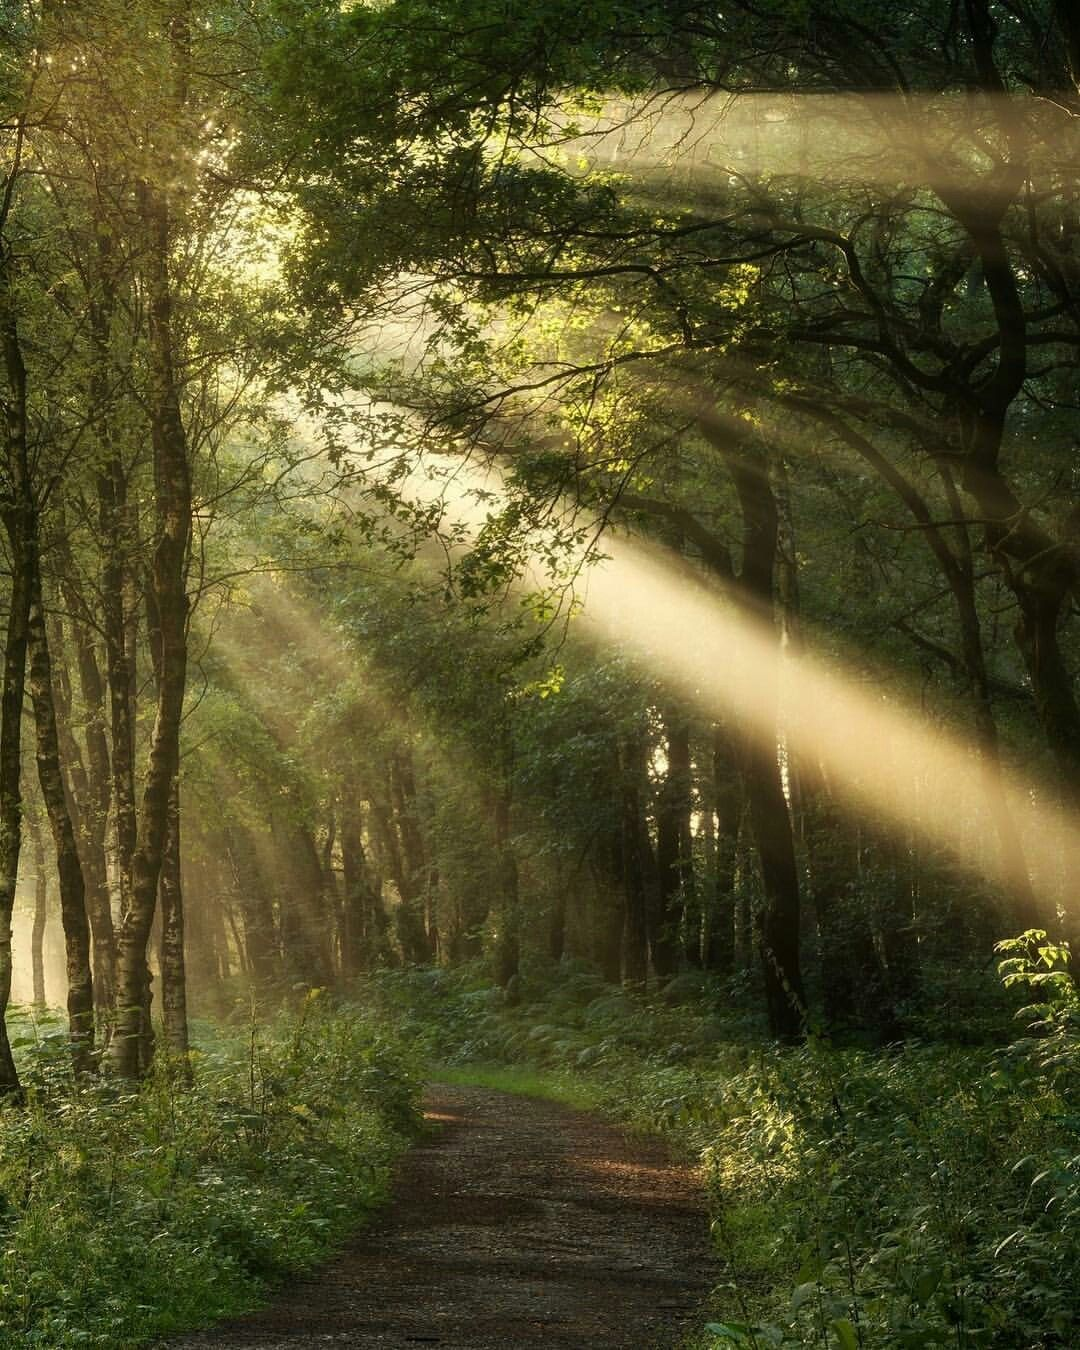 Beams Of Light Filtering Through The Trees With Images Nature